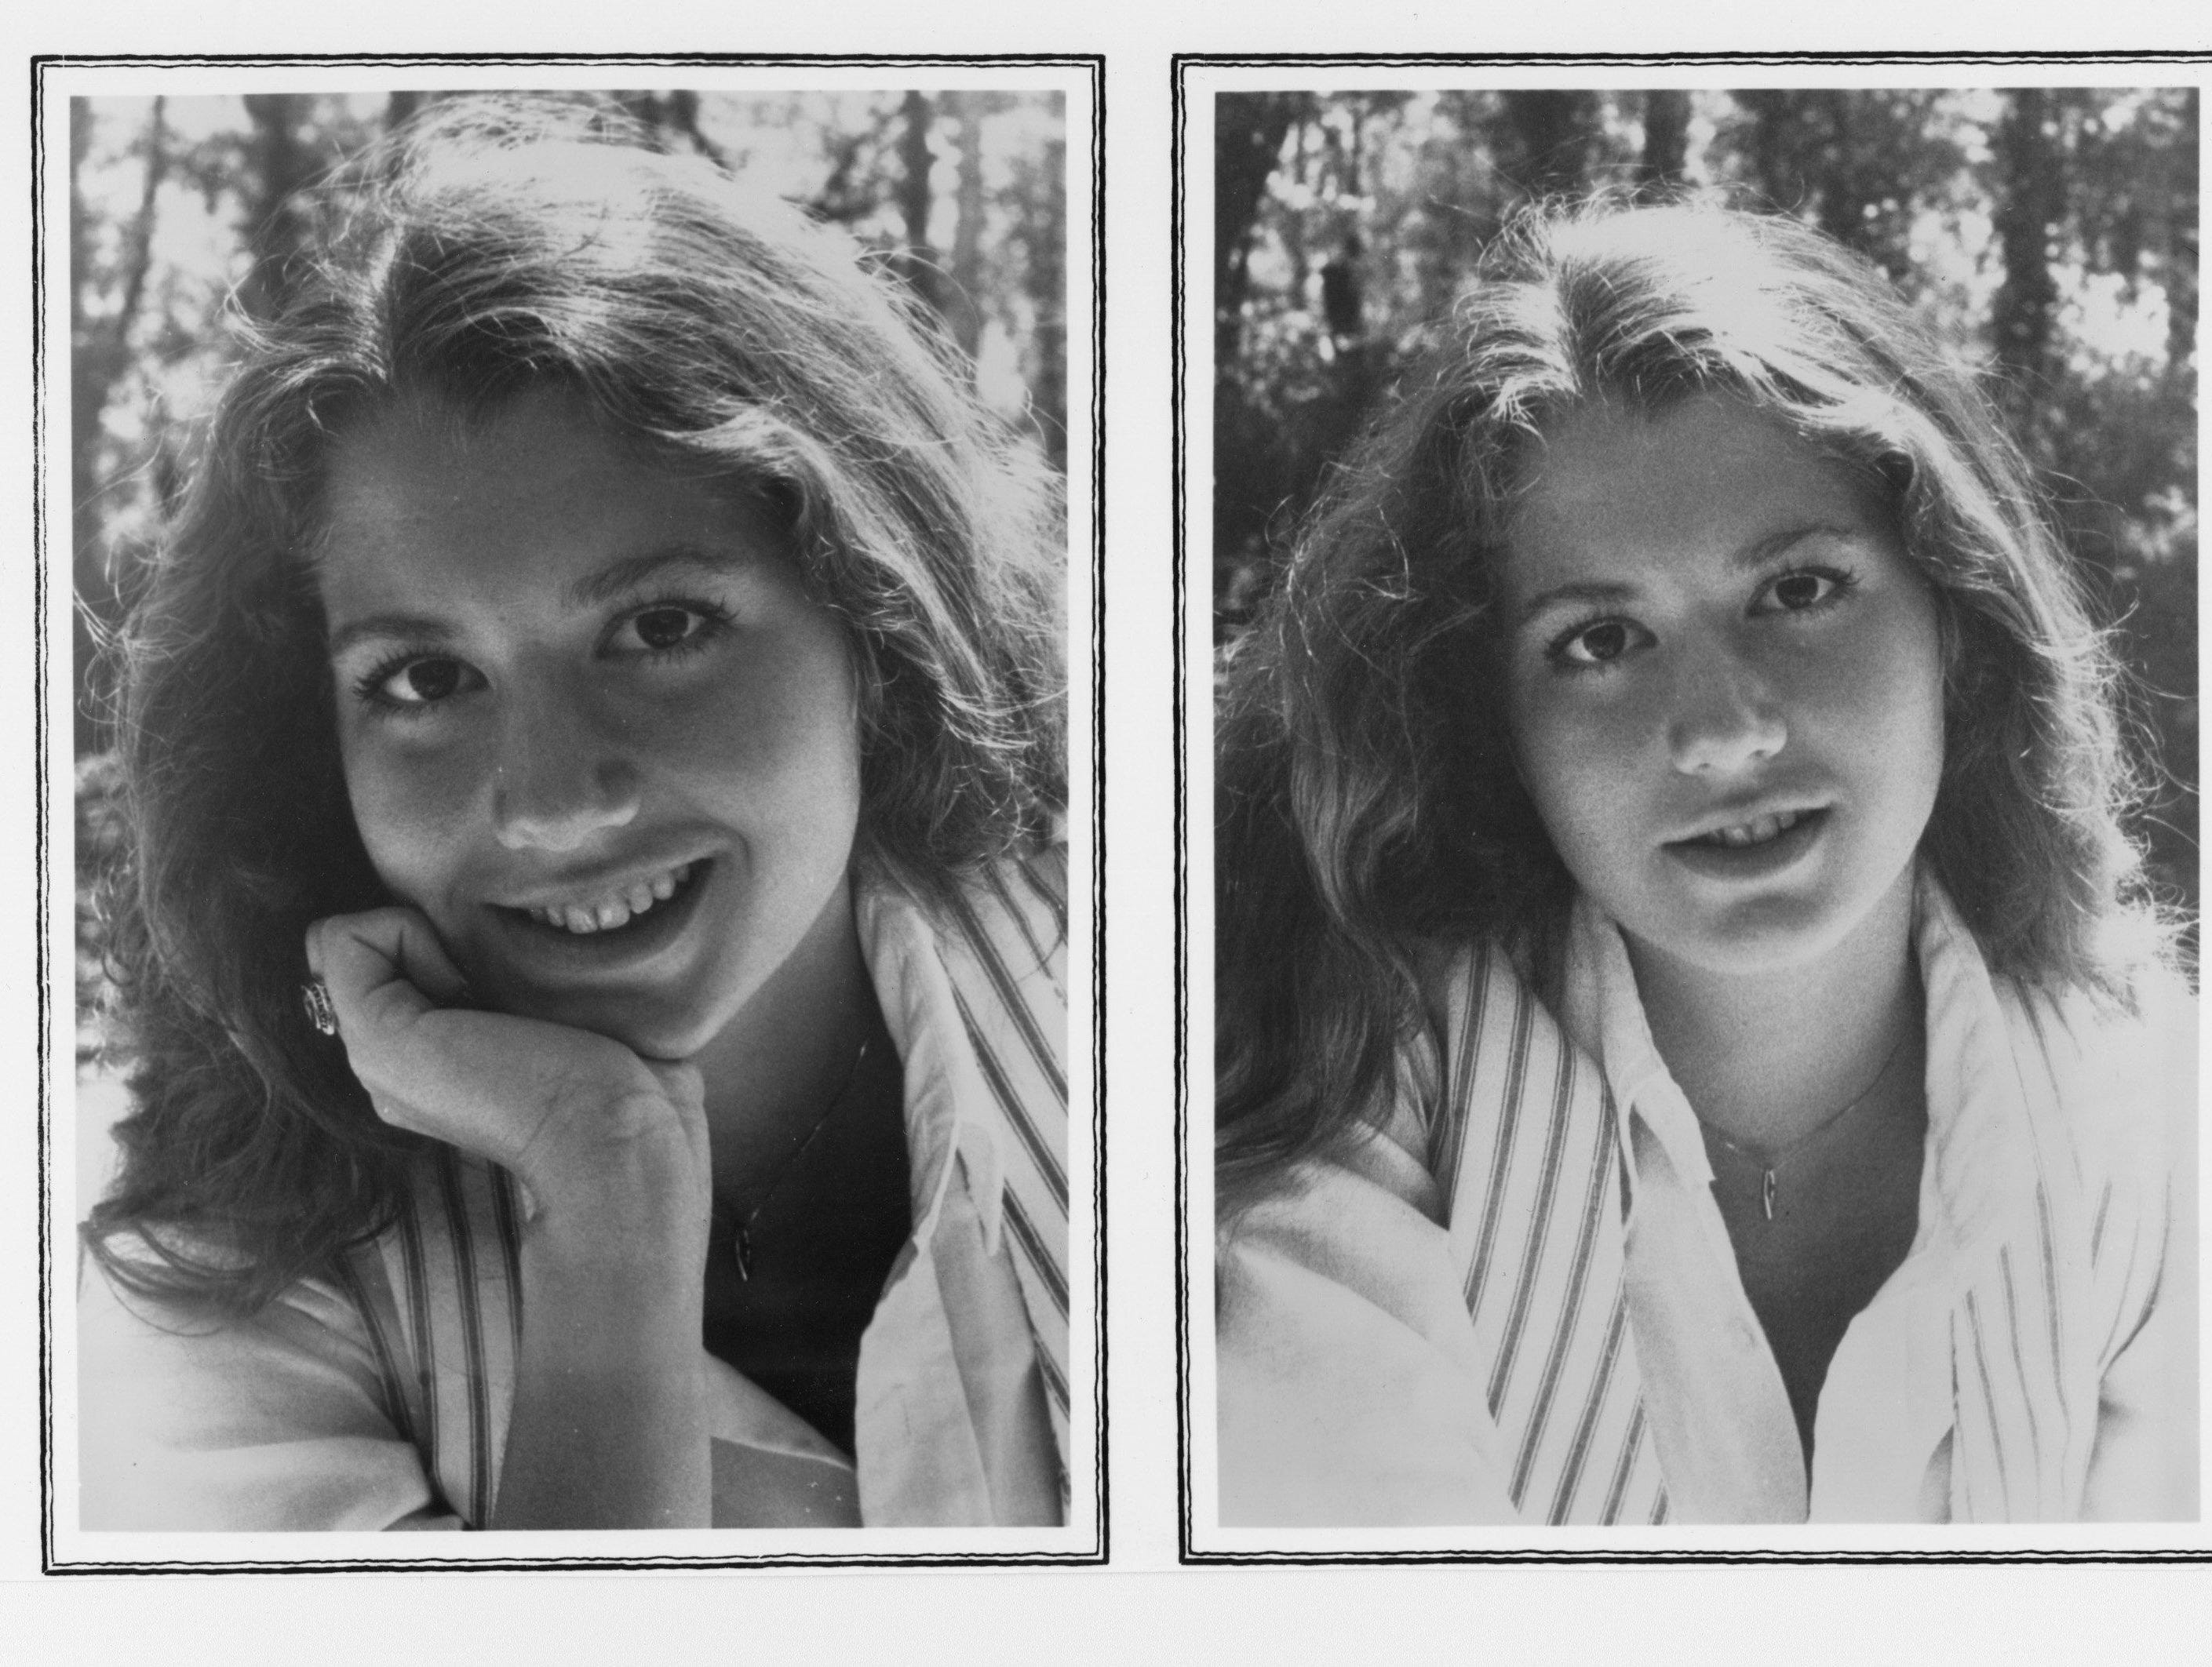 Amy Grant was still in high school when her first album was released. These are among her earliest promotional photos.